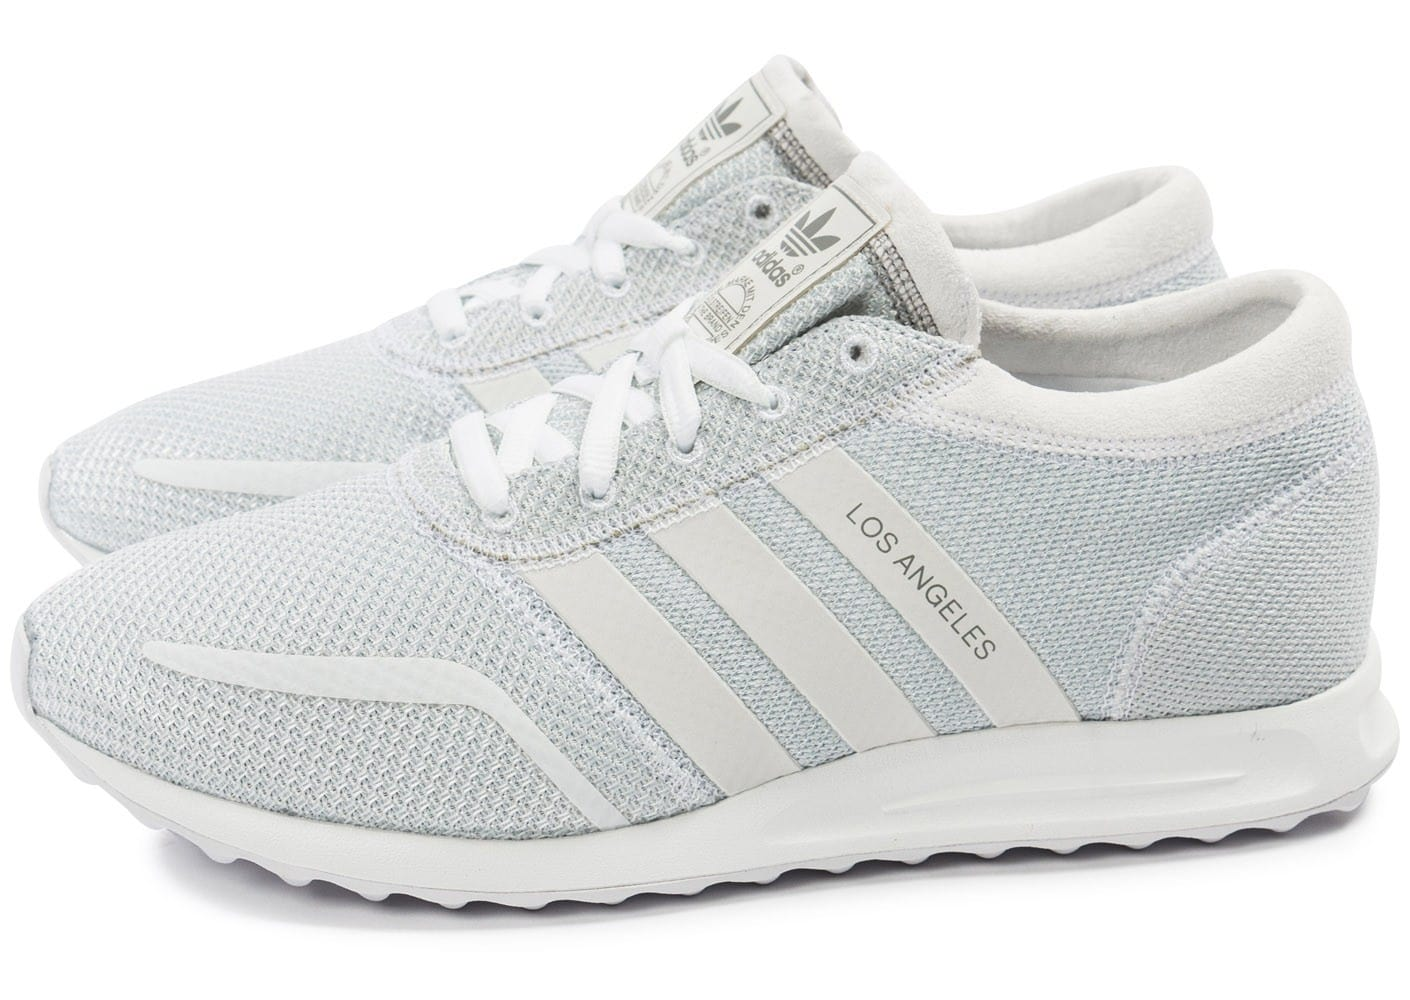 Chaussures Adidas Los Angeles blanches Fashion homme 4FGyDJ